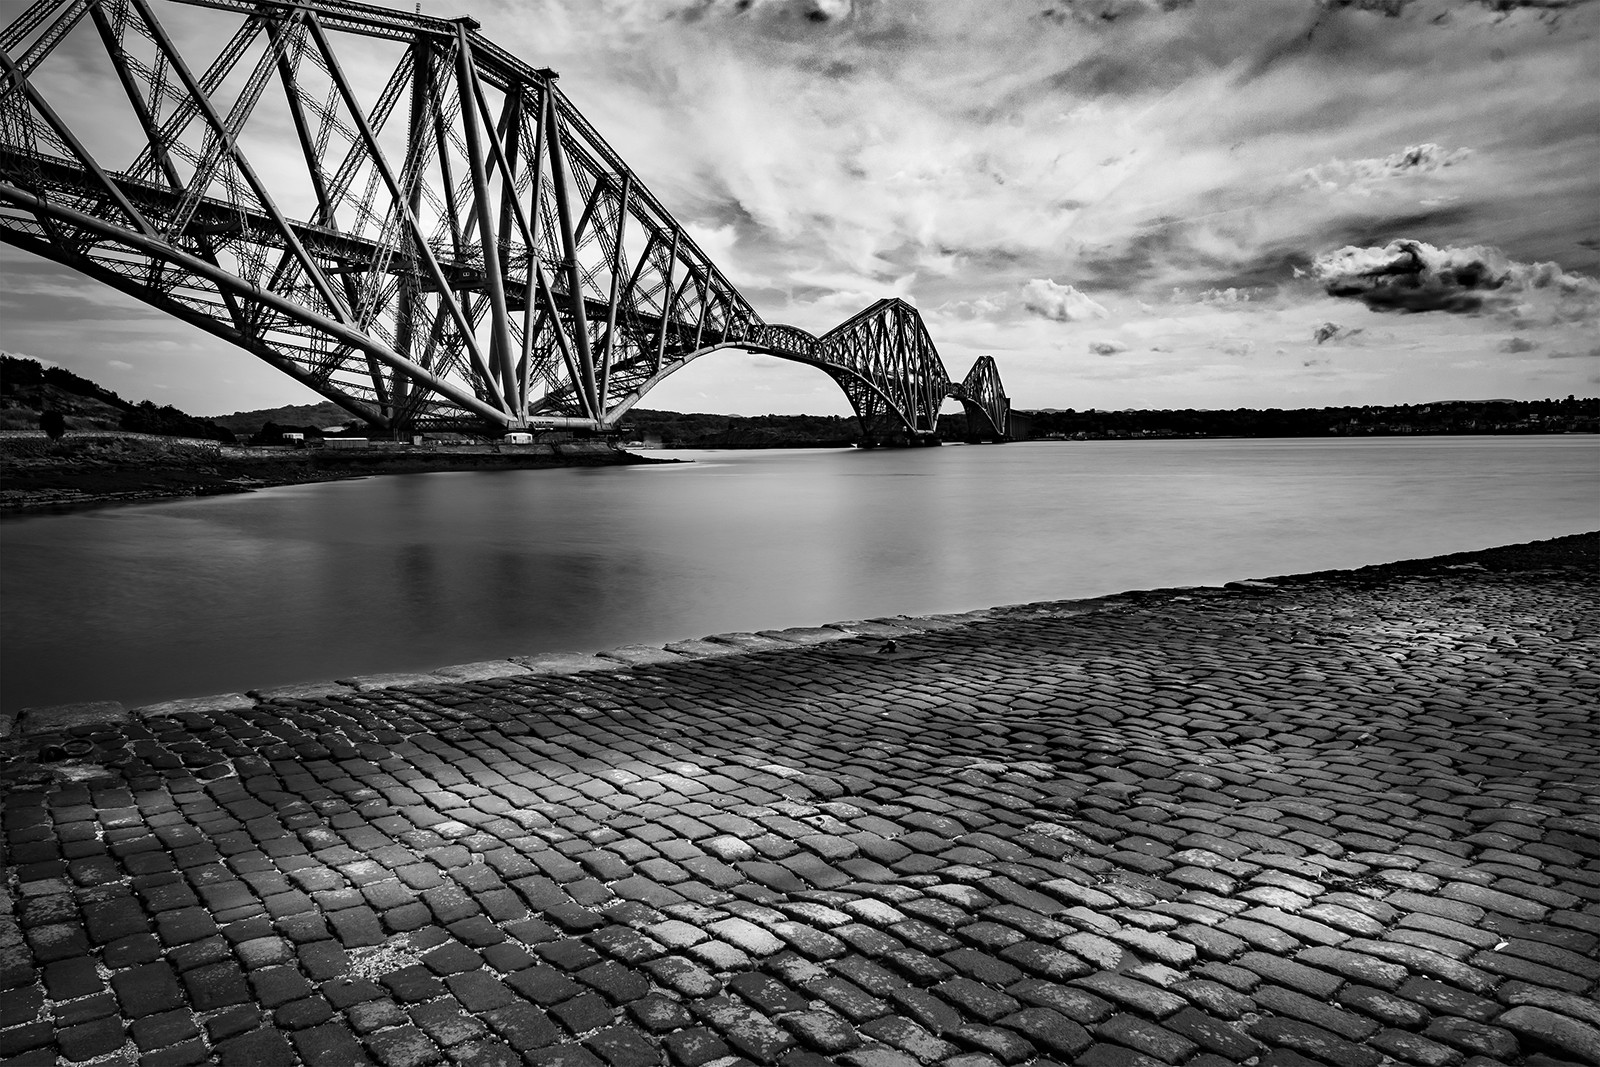 MONO - Bridge by Tom Dalzell (8 marks)